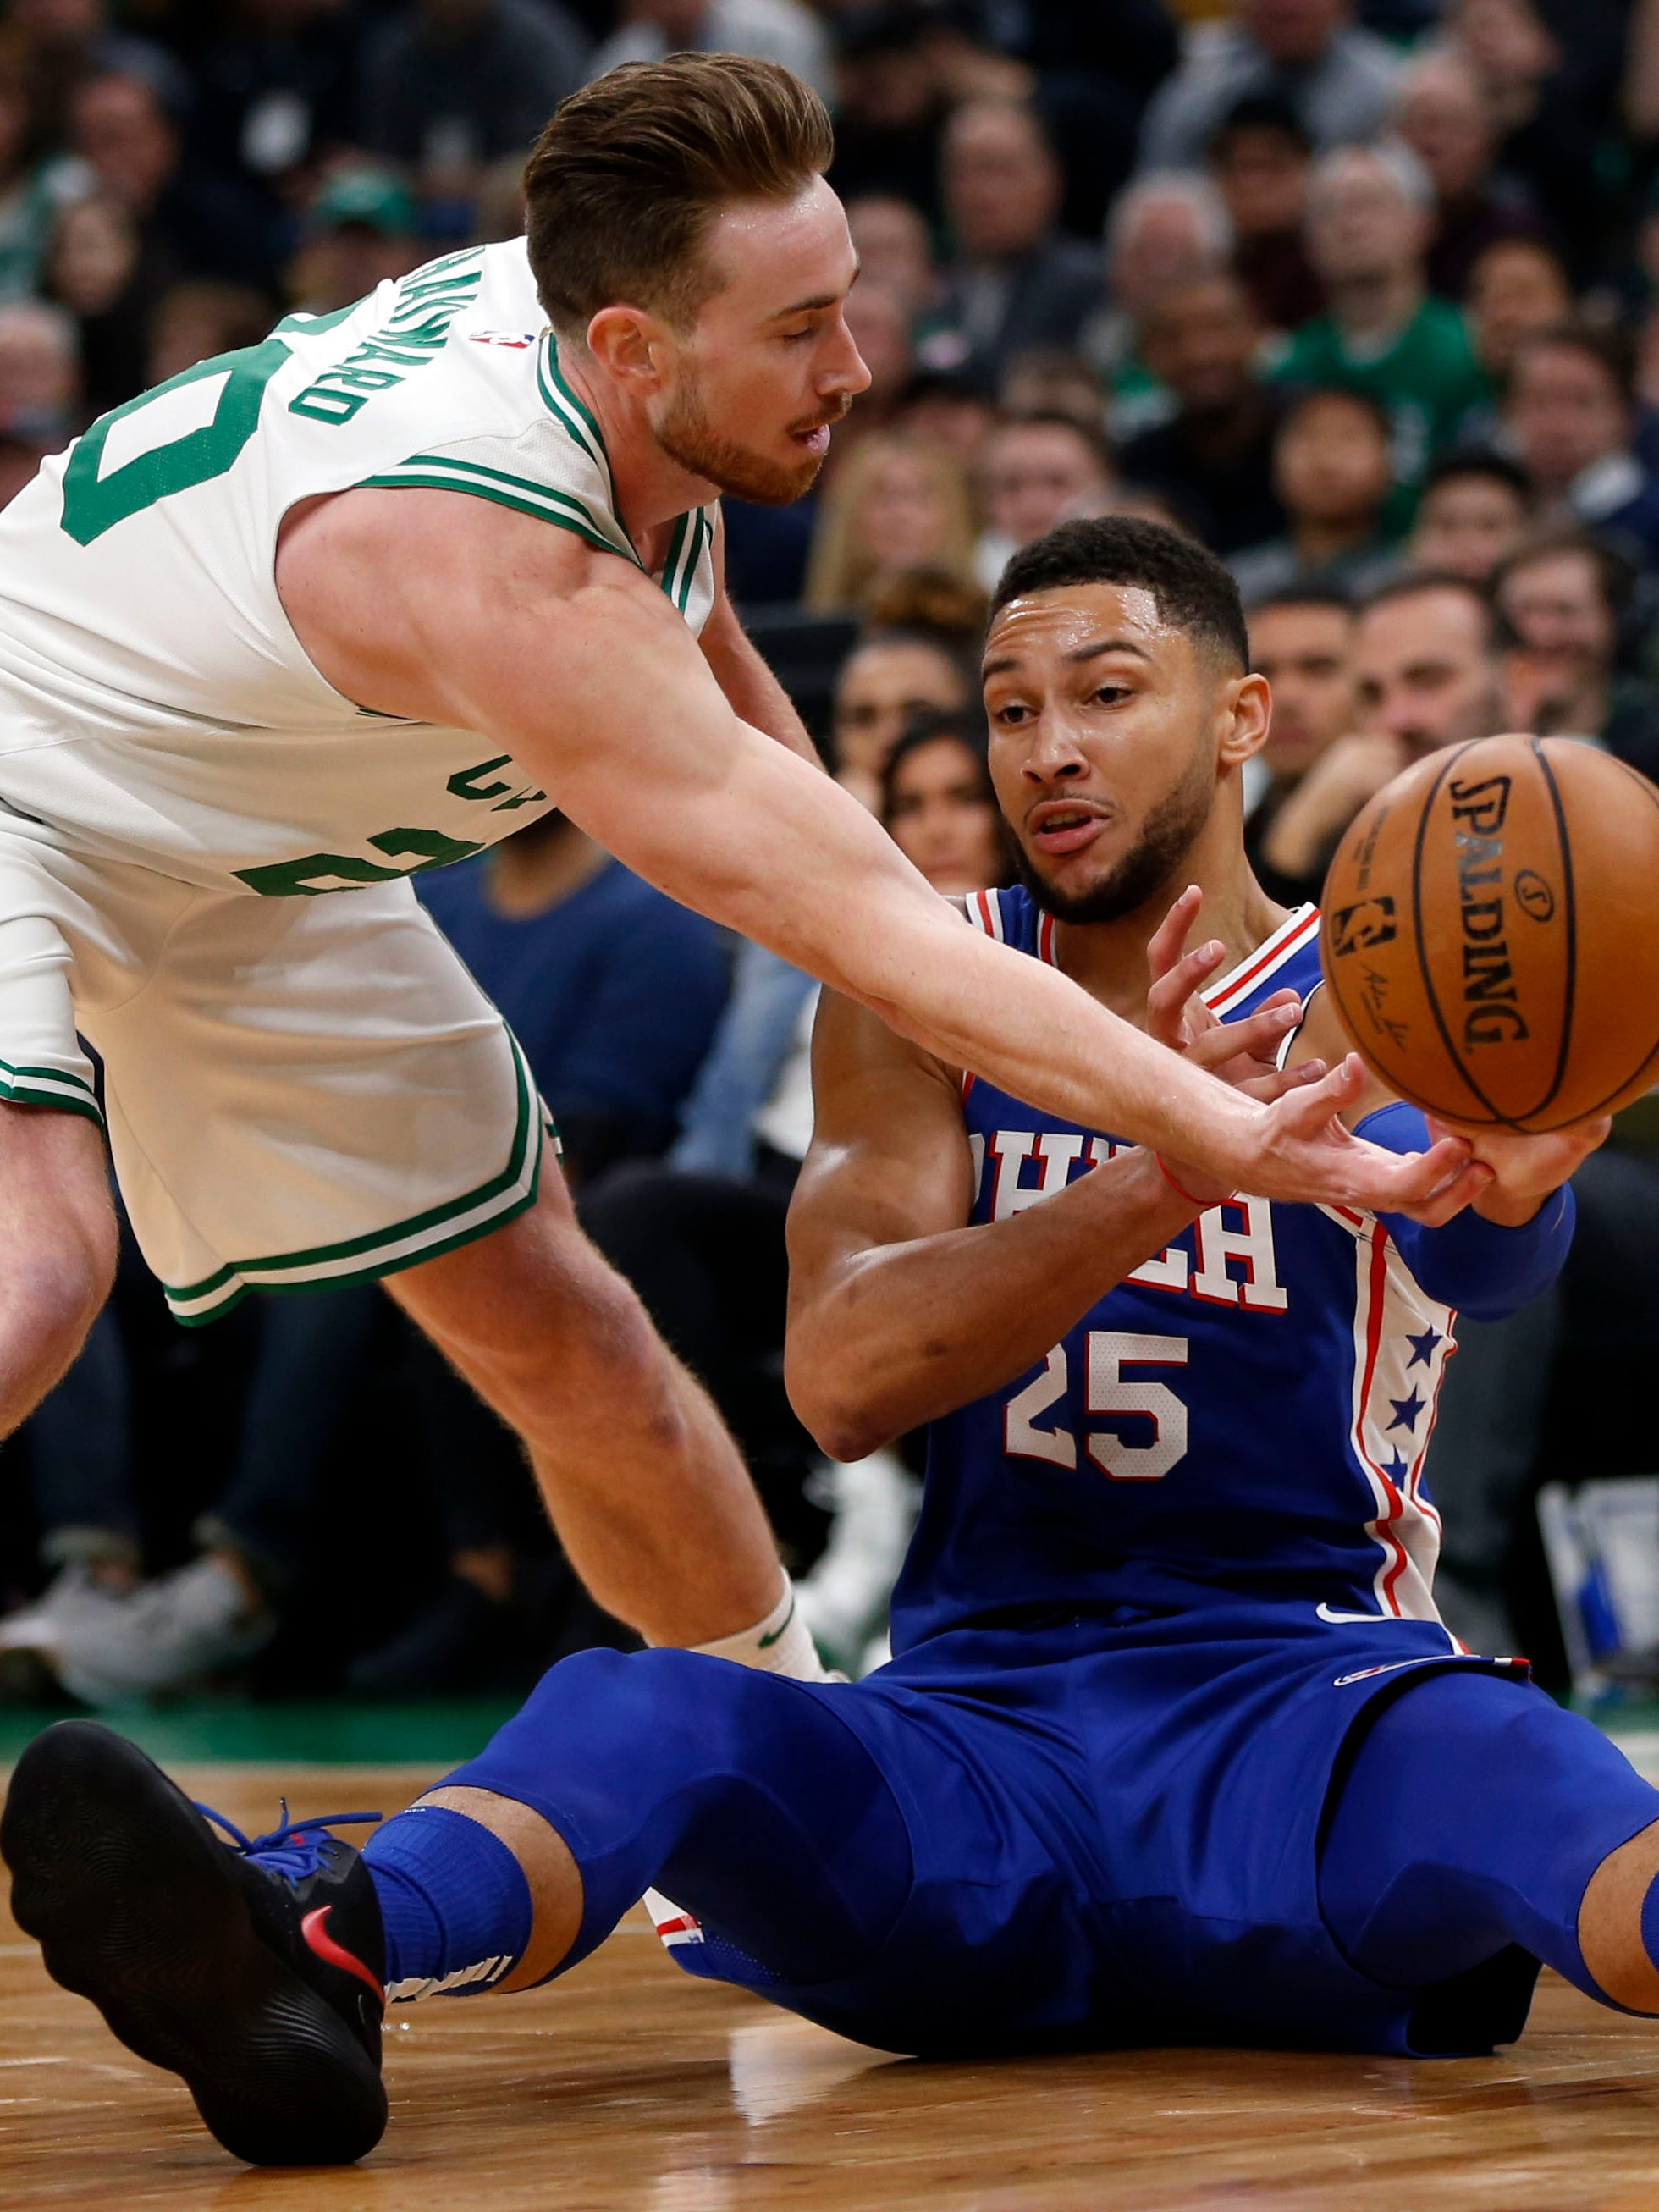 Celtics Gordon Hayward battles with 76ers Ben Simmons for a loose ball during the first half at TD Garden.